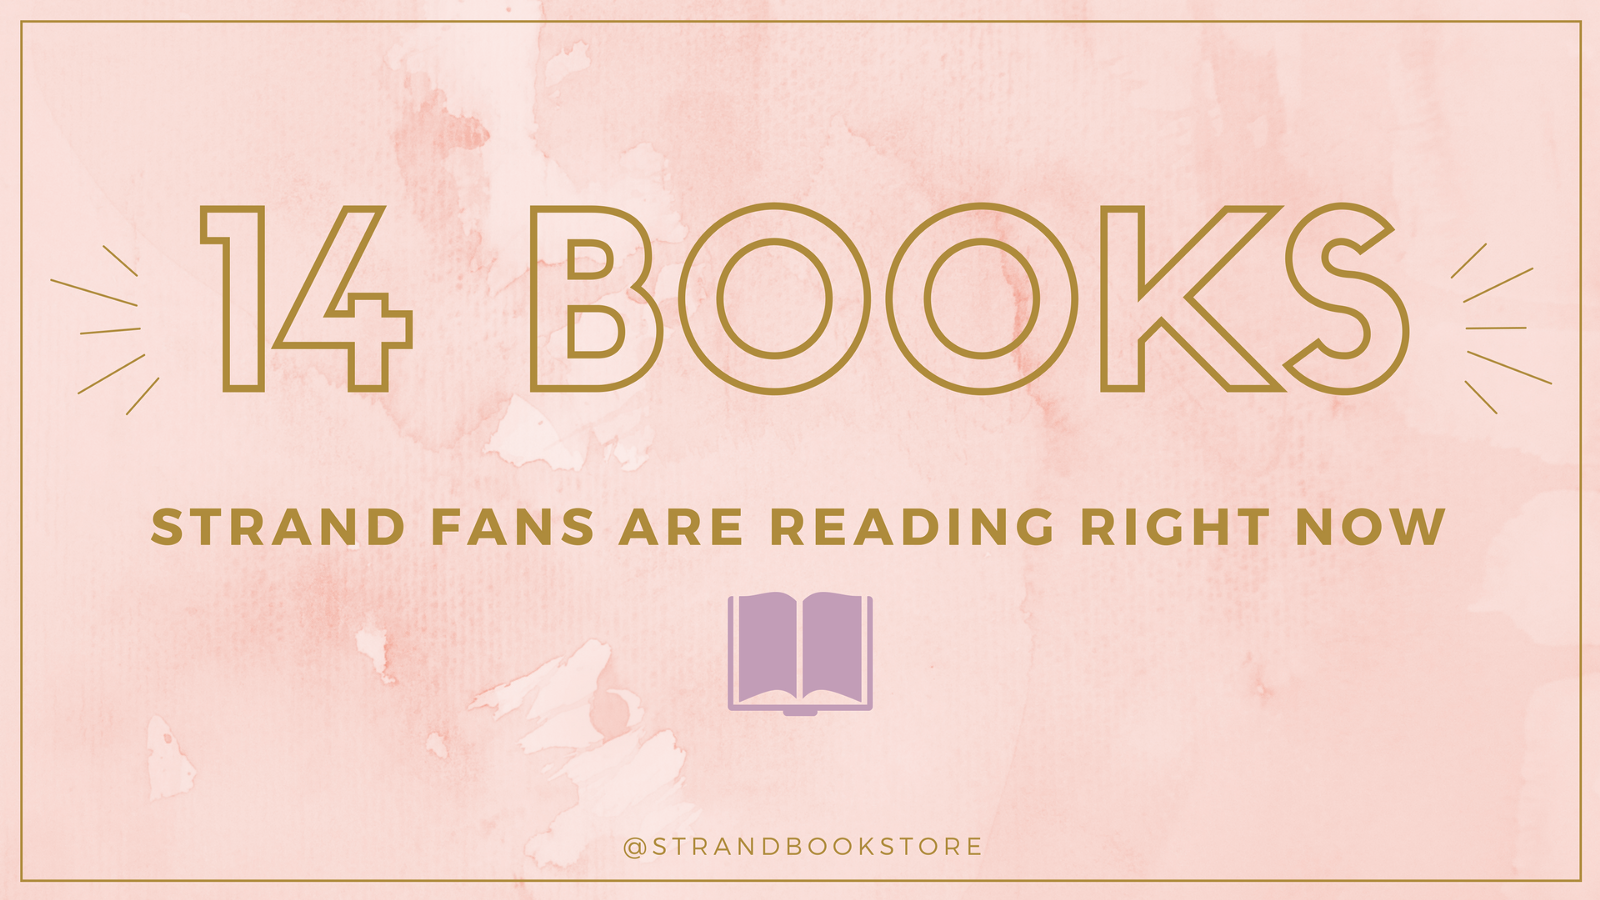 14 Books Strand Fans Are Reading Right Now Strand Book Store Medium